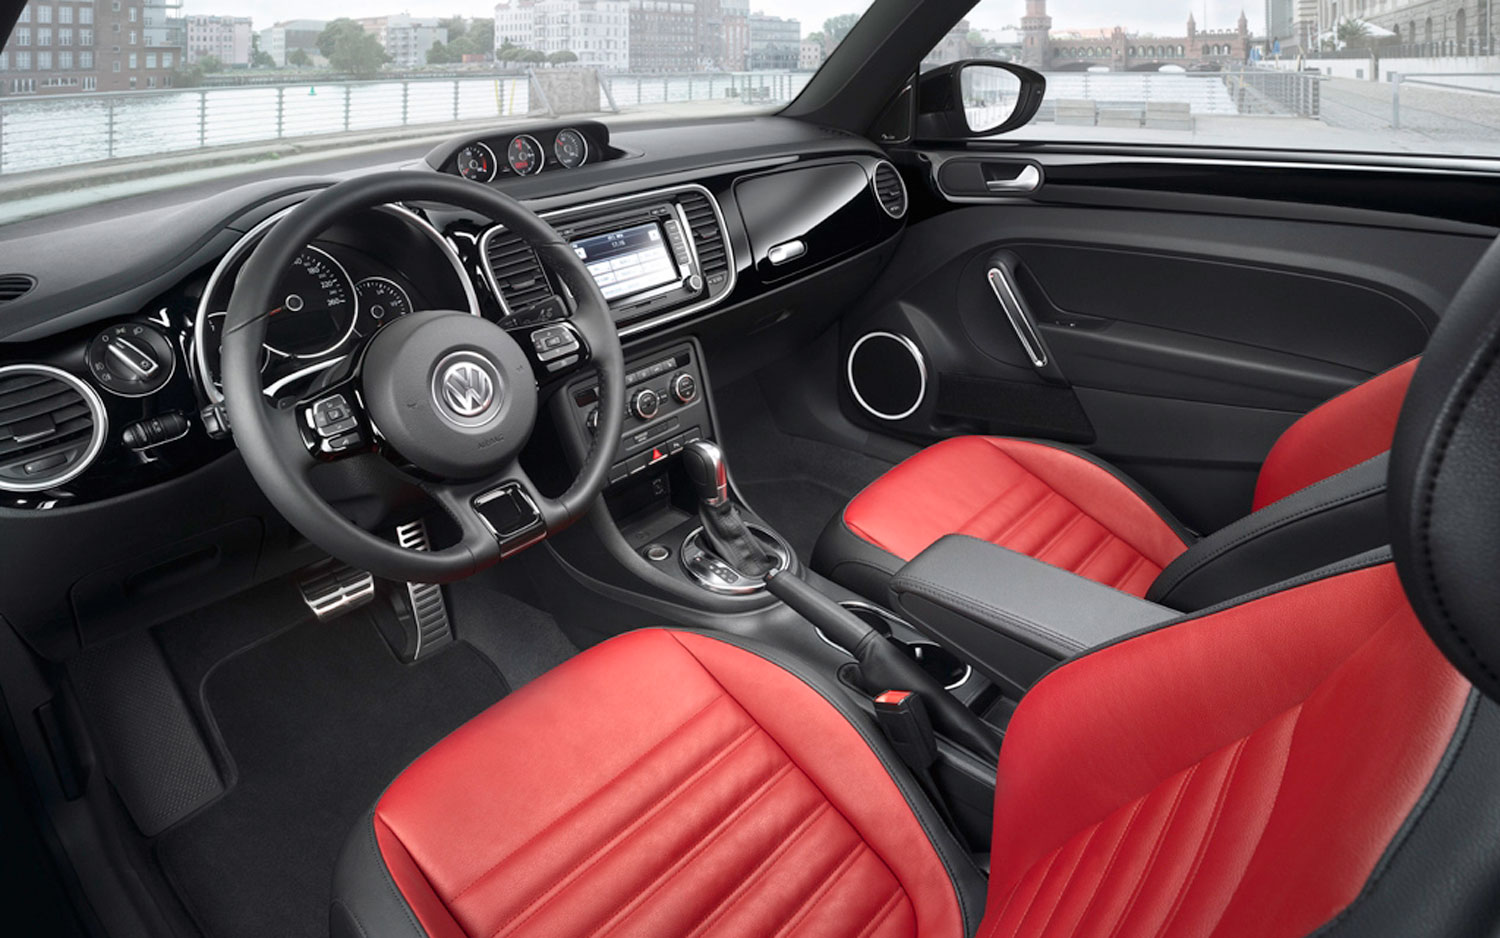 Volkswagen New Beetle interior #3